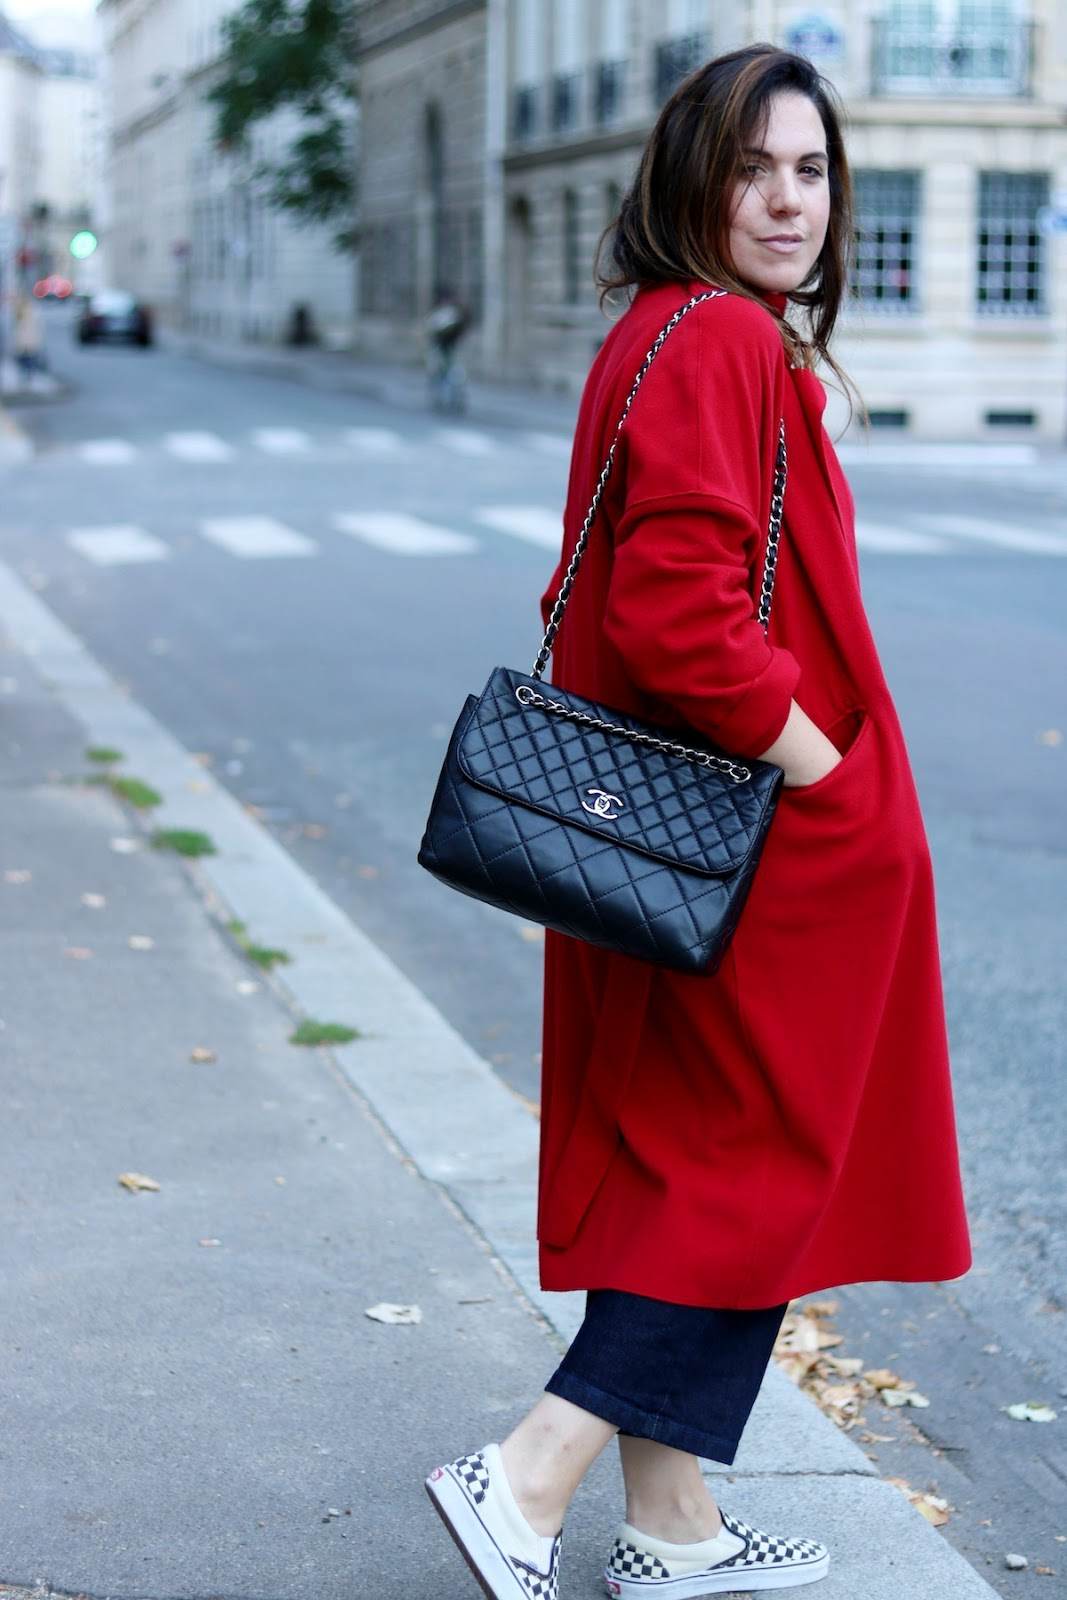 red wool coat outfit itb chanel flap bag vans checkered slip ons outfit paris